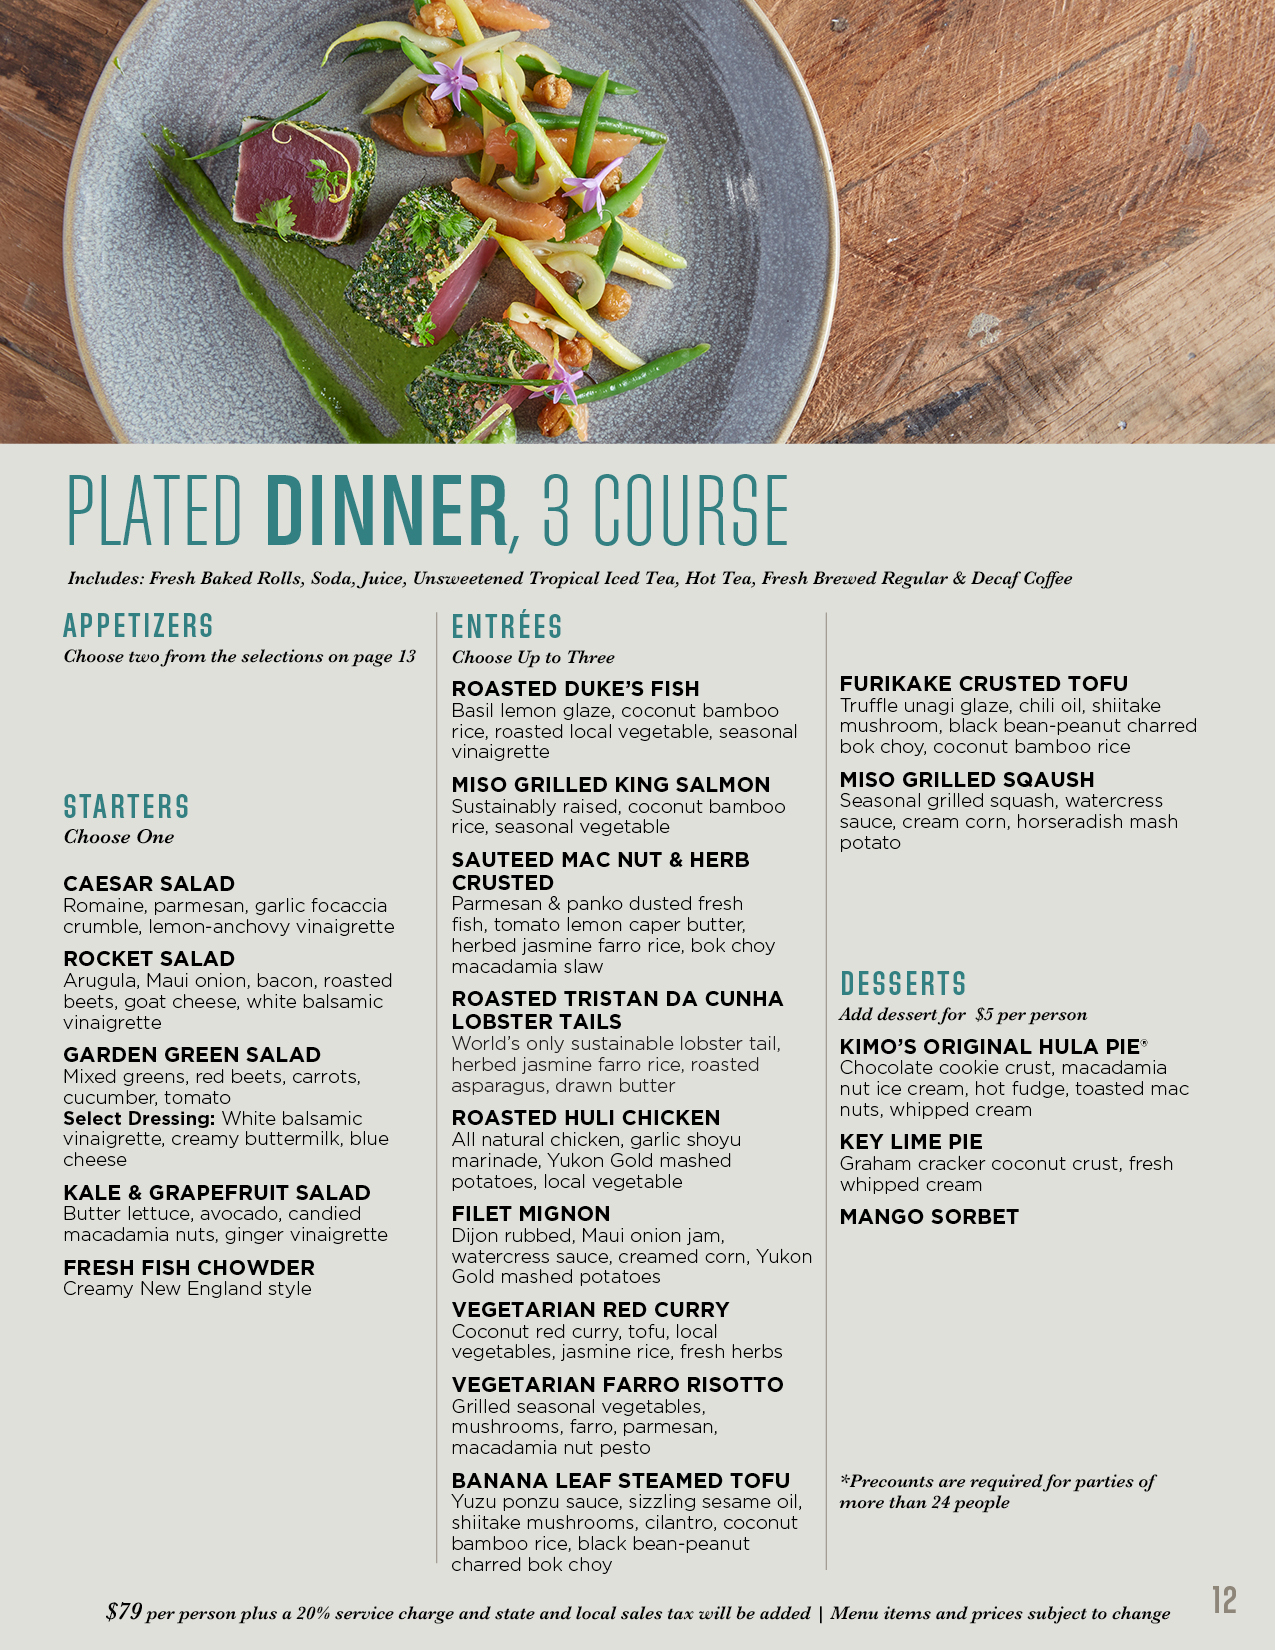 3 course plated dinner